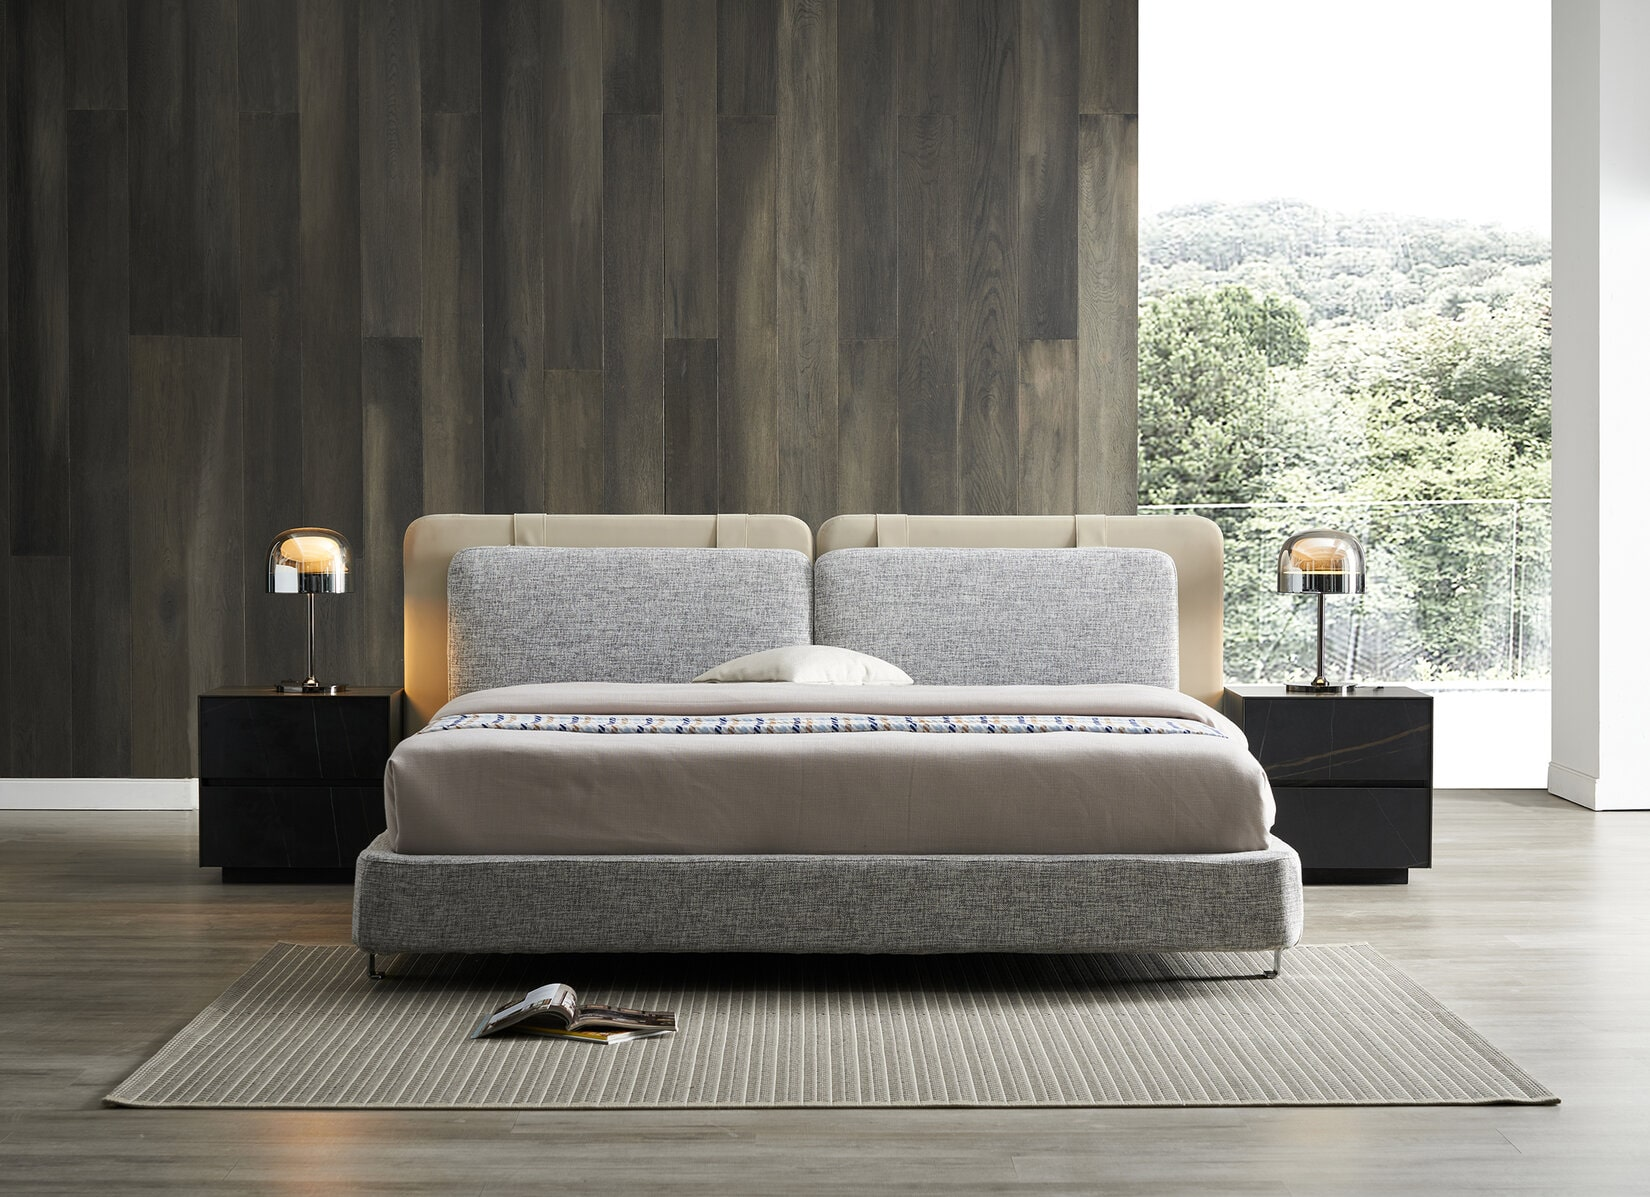 a king sized bed from China